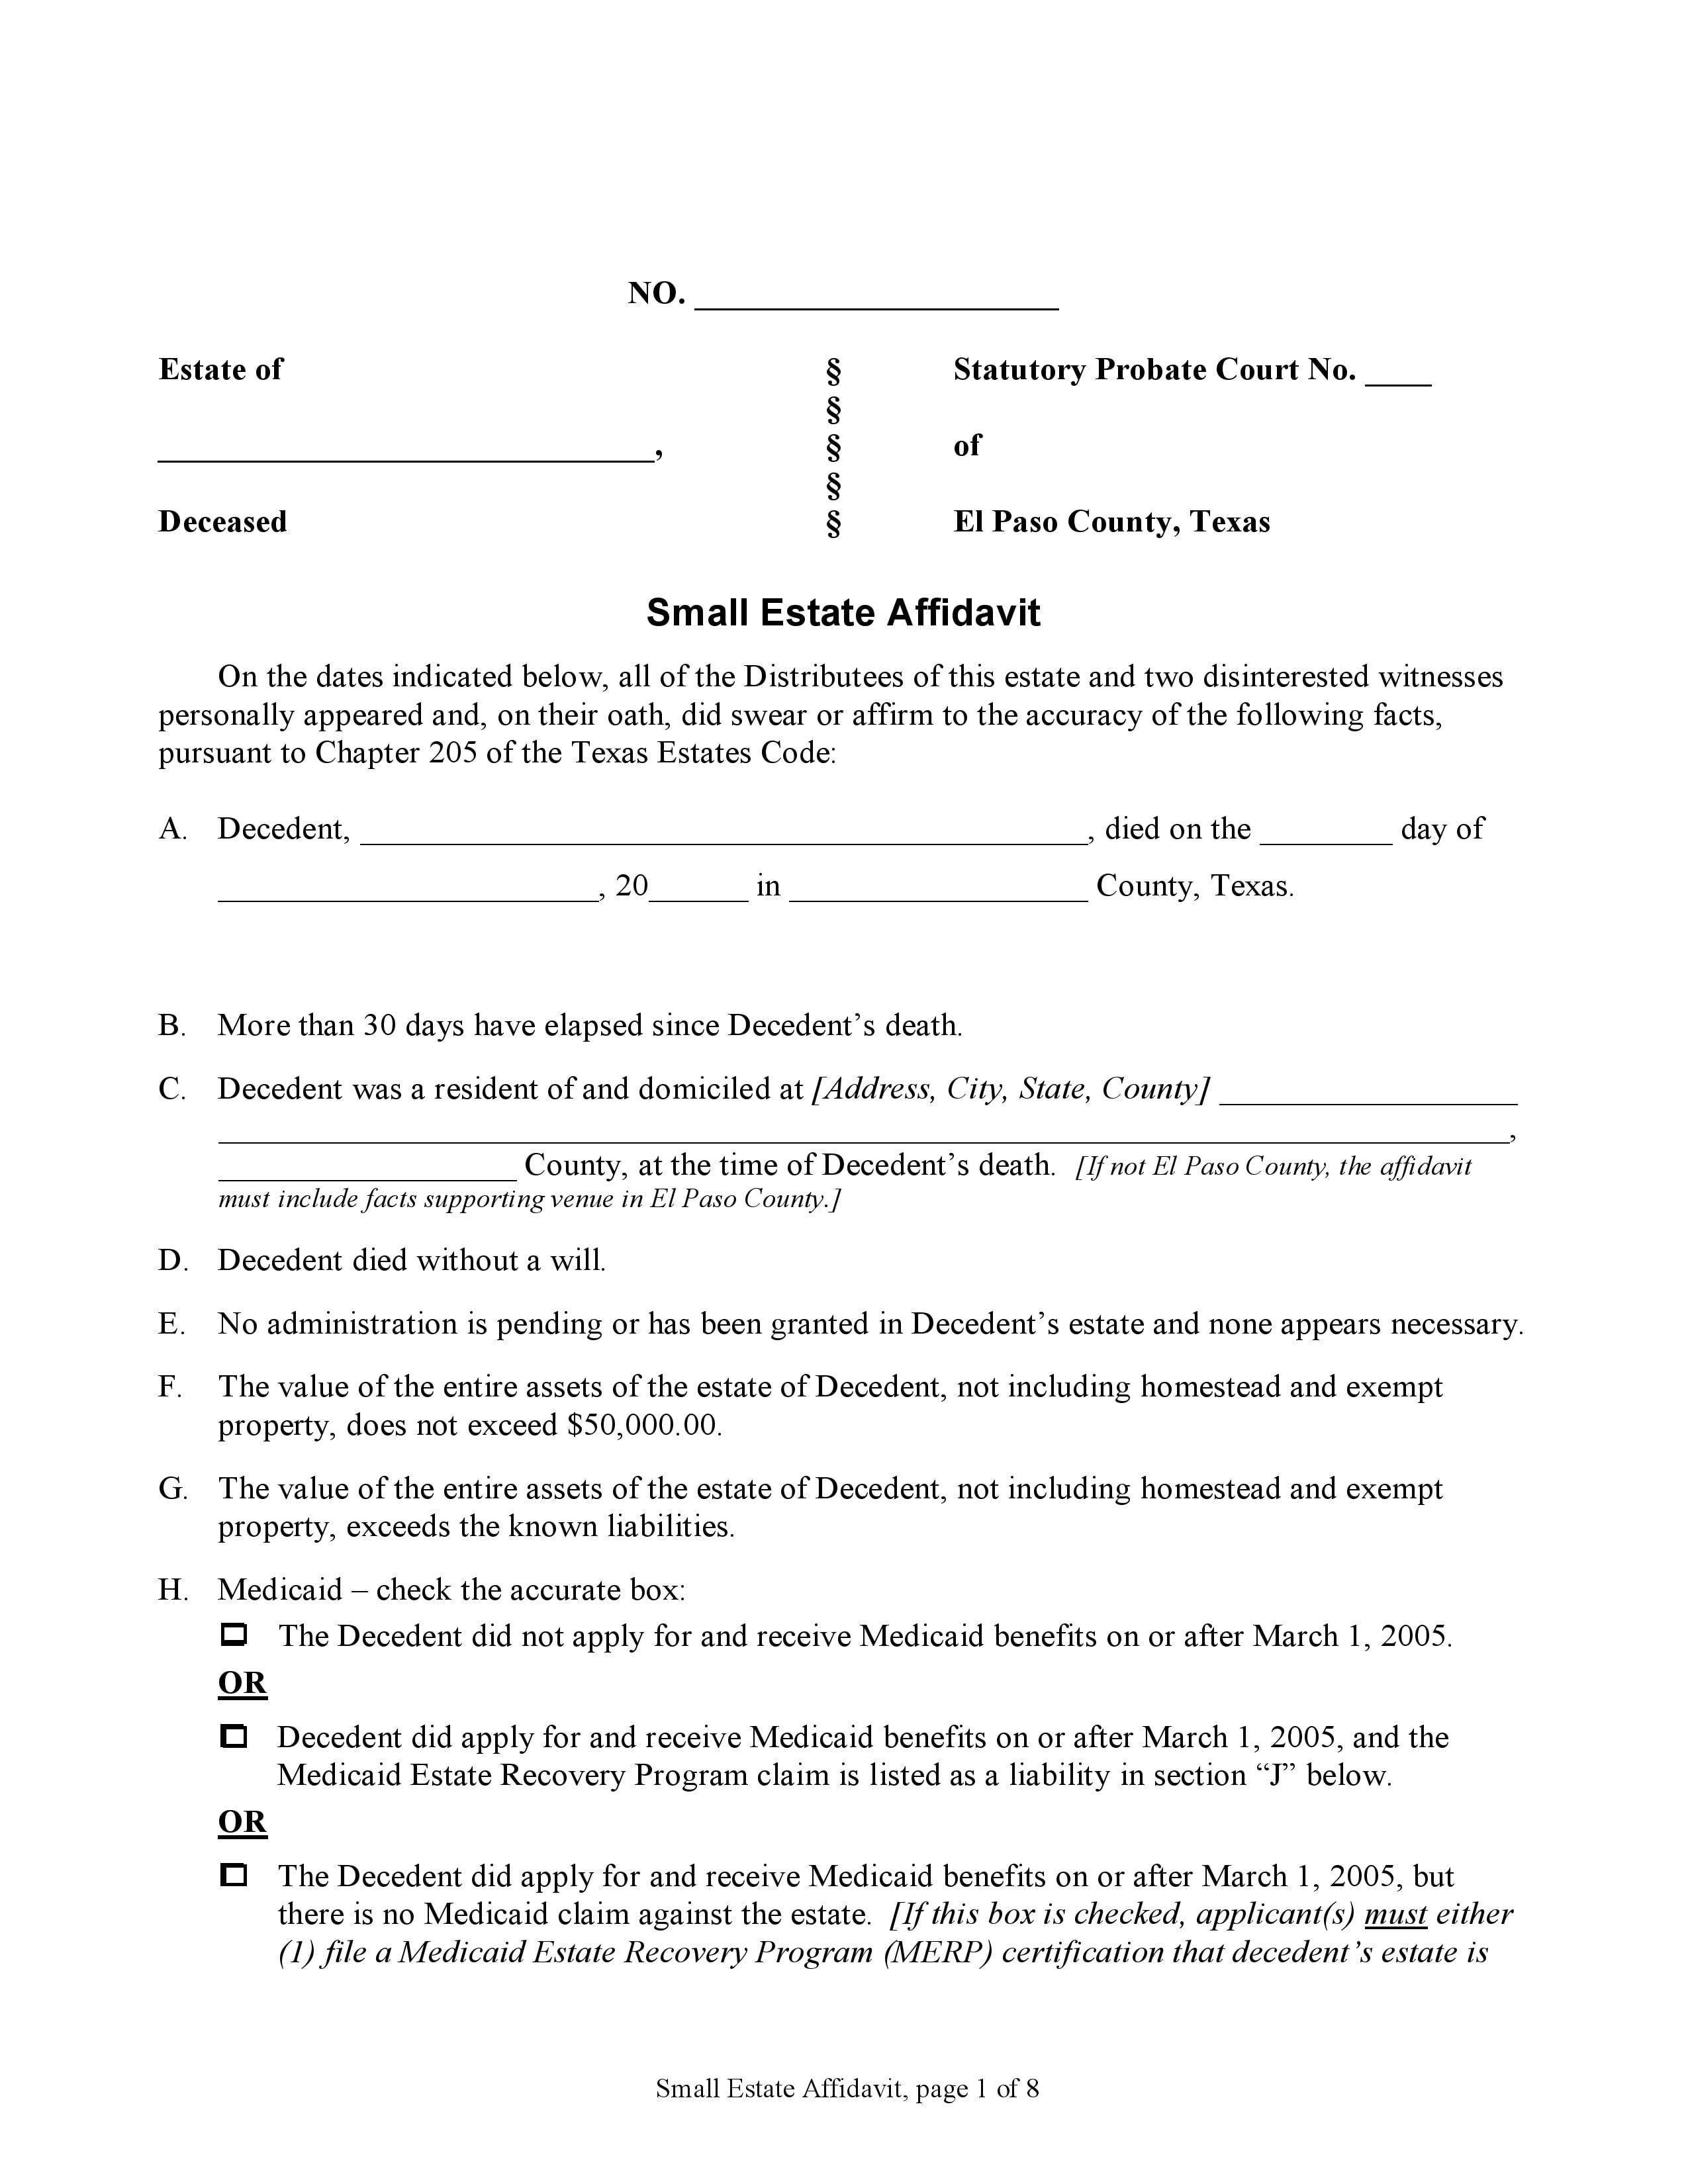 El Paso County Texas Small Estate Affidavit Form